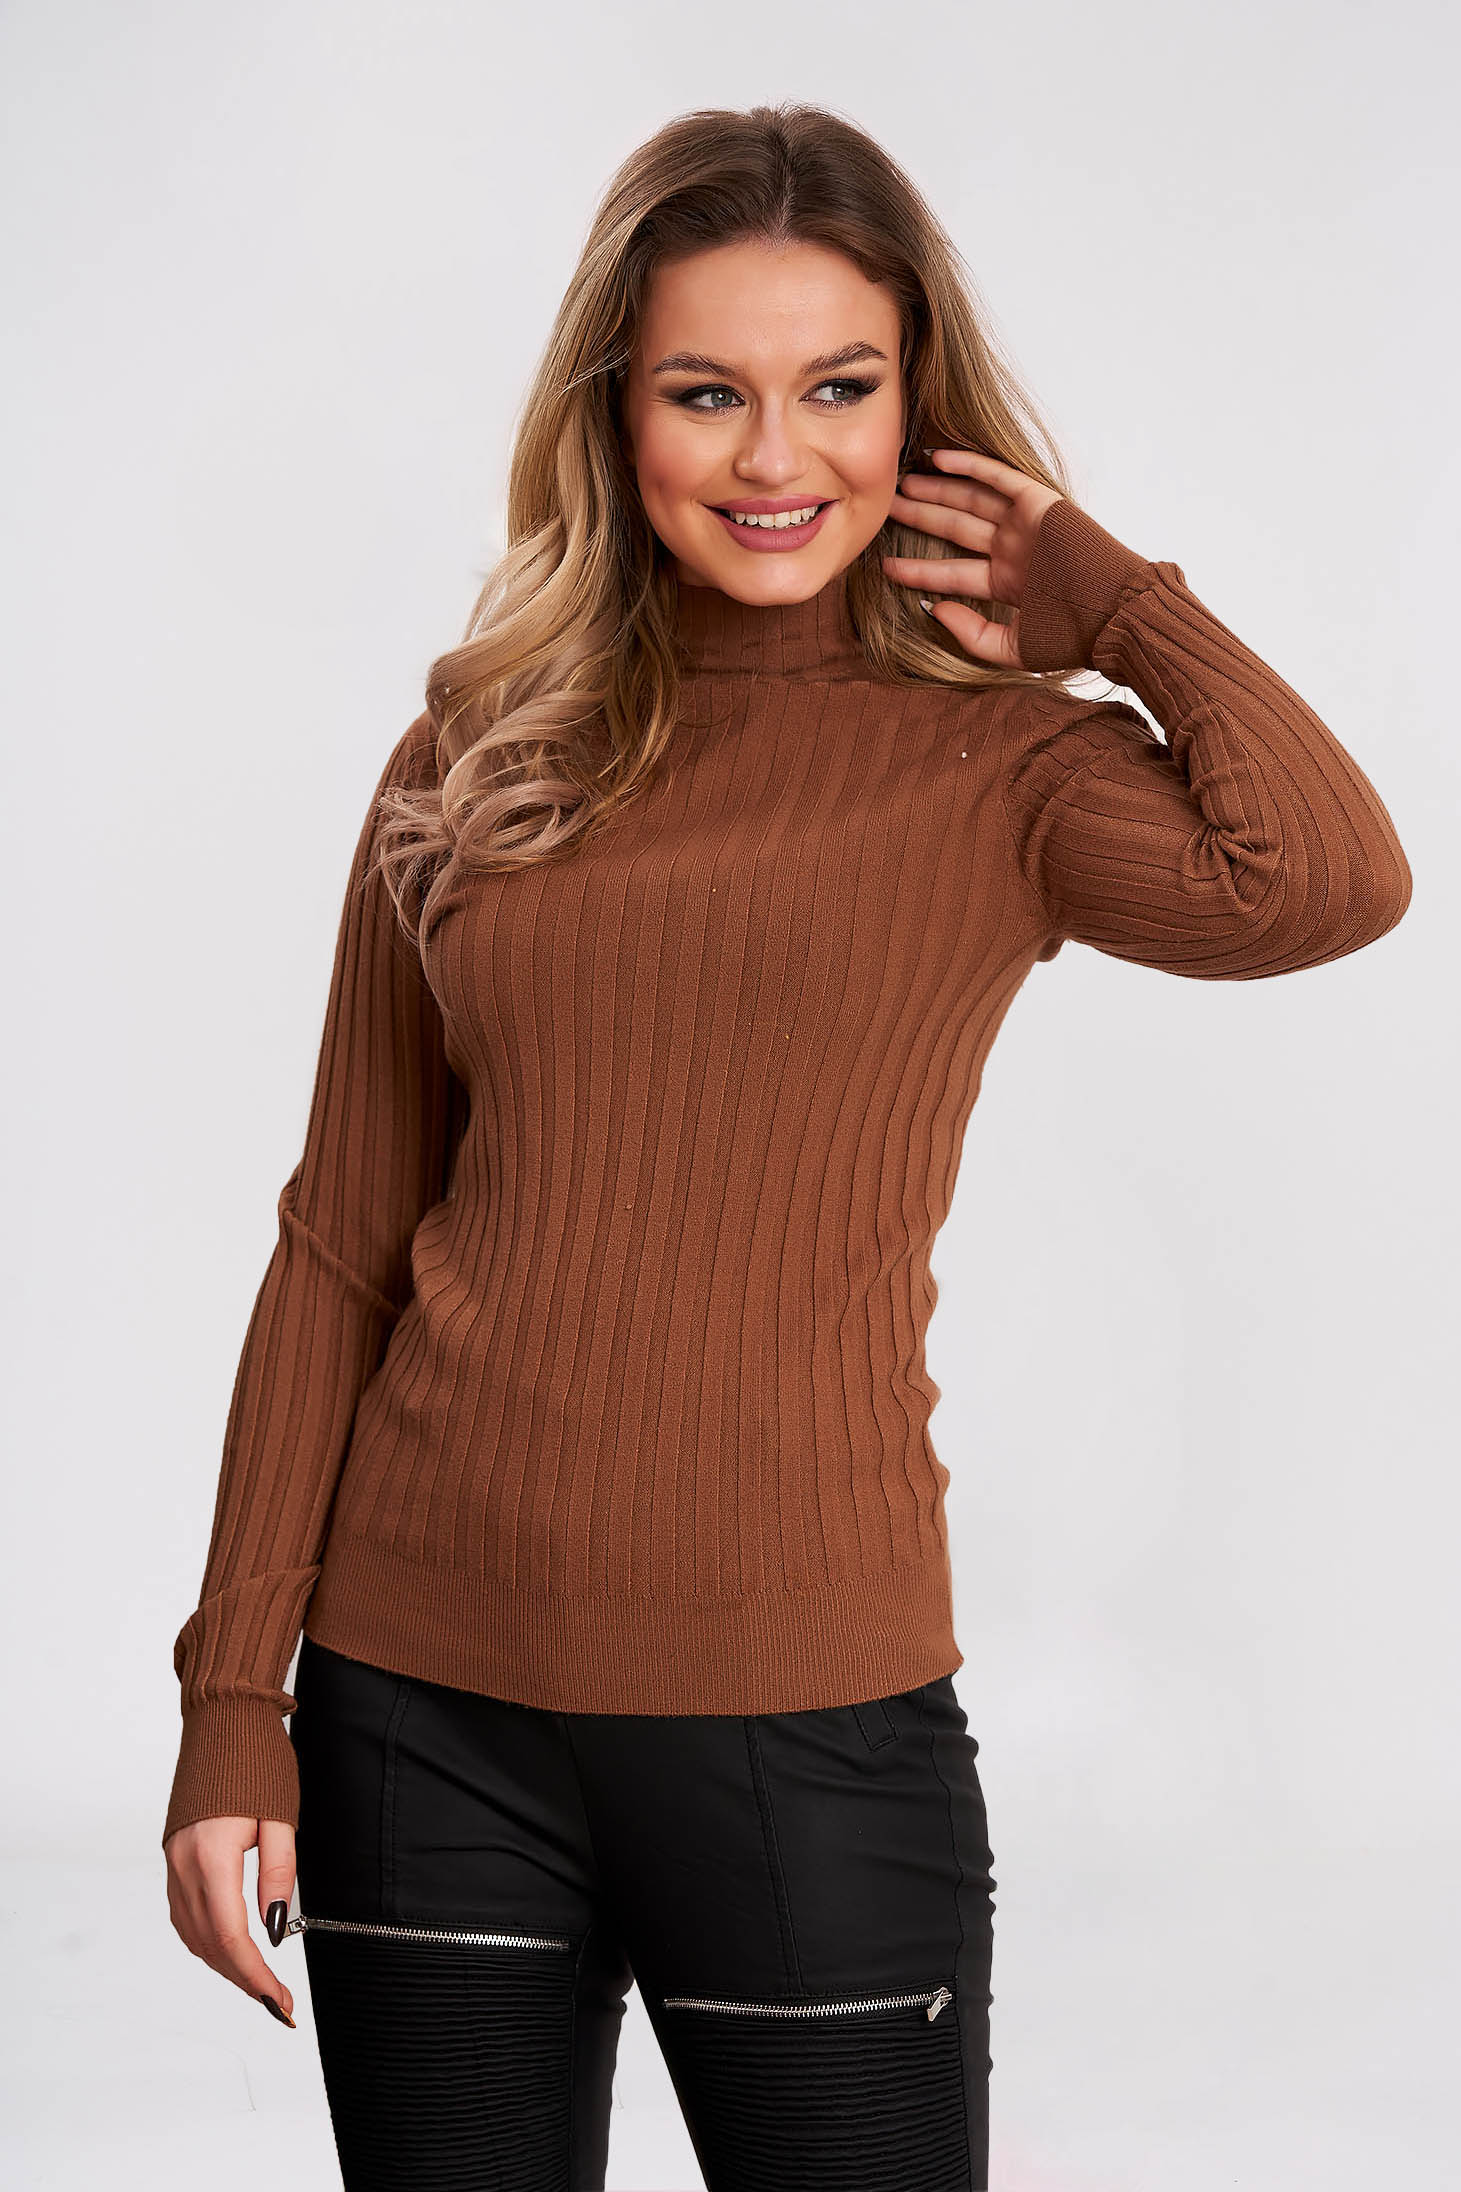 Turtleneck knitted sweater tented brown from striped fabric